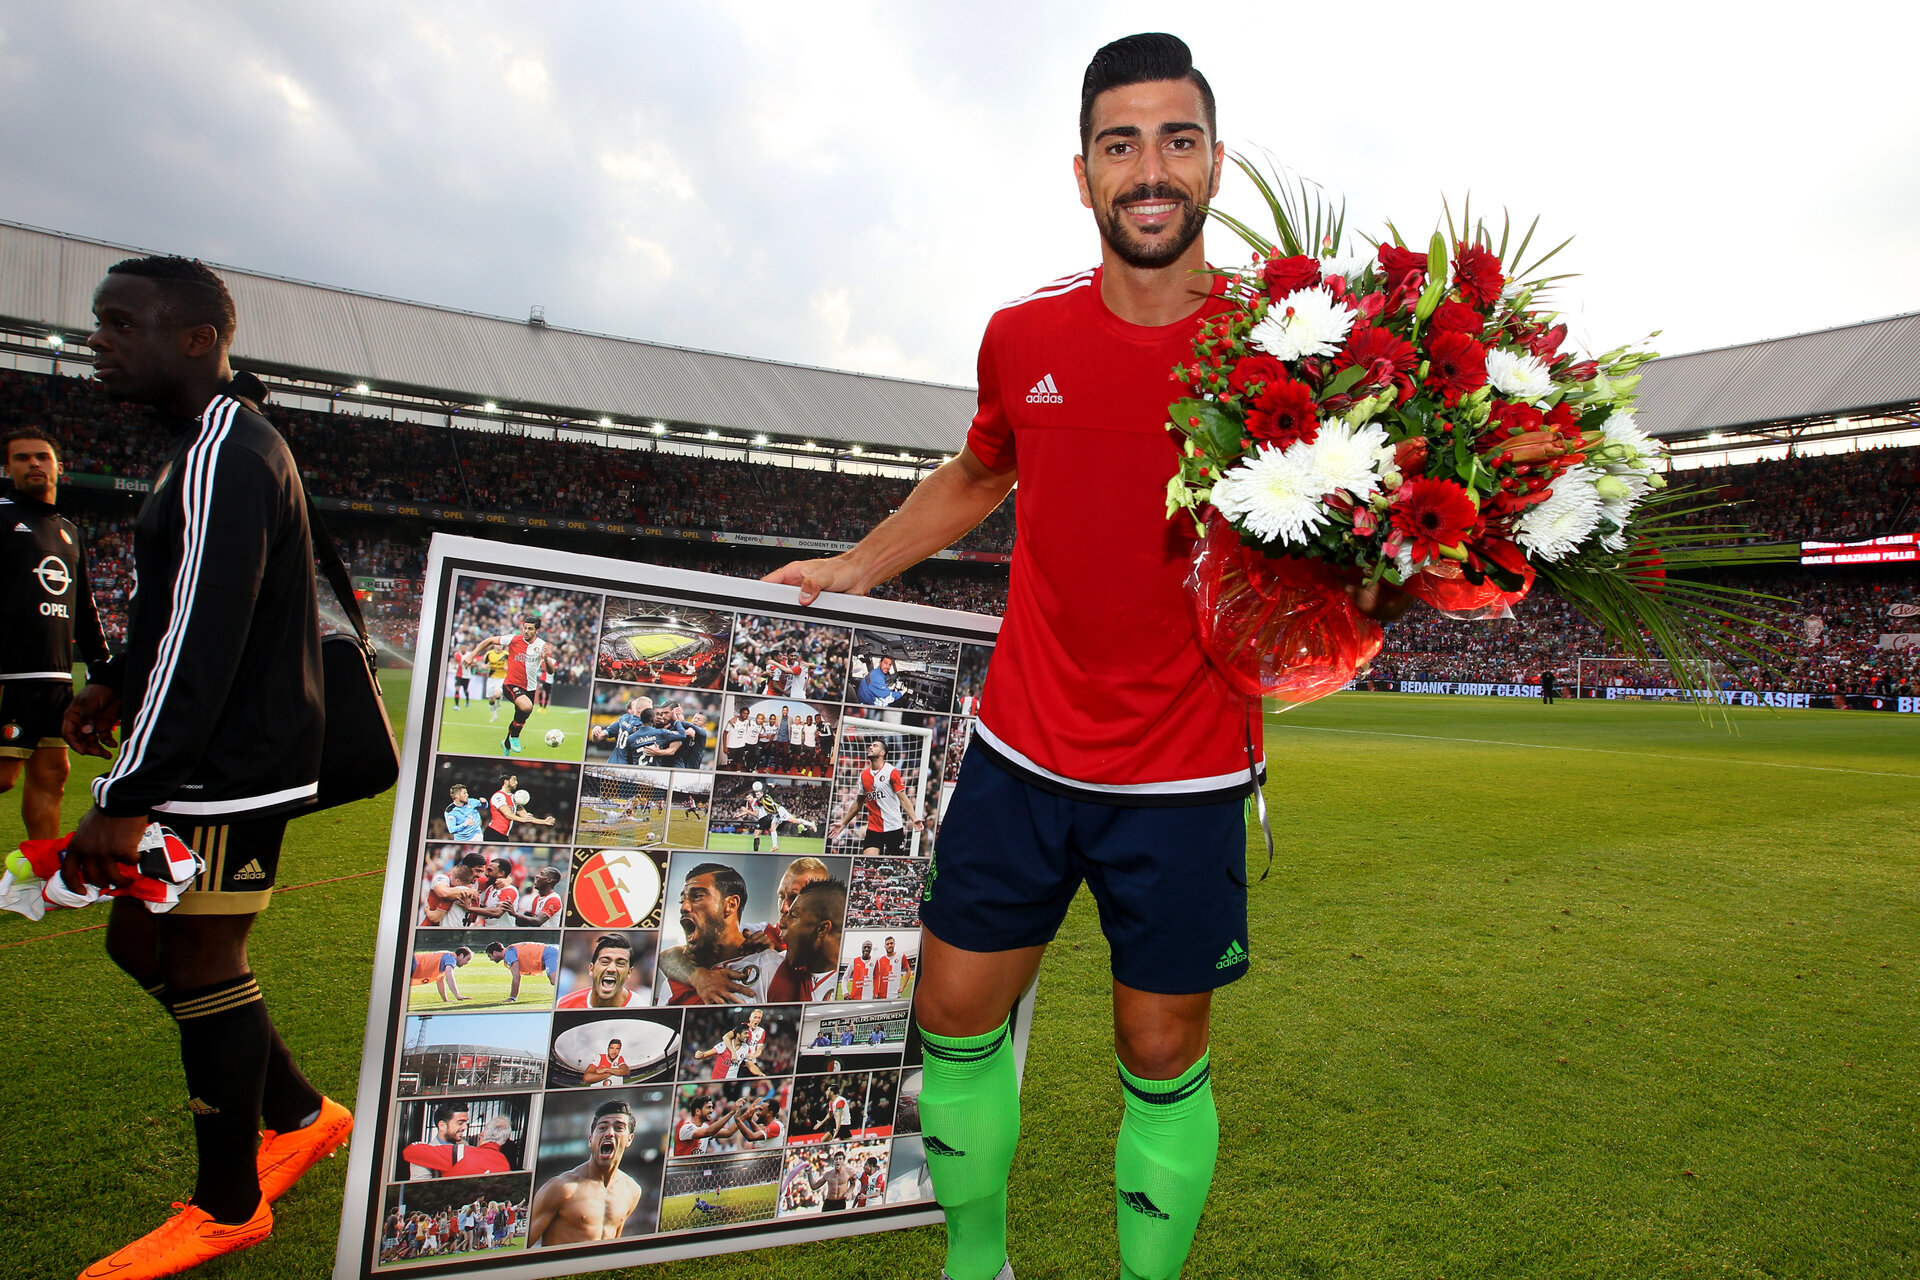 Graziano Pelle during pre-season friendly between Feyenoord and Southampton FC, De Kuip, Rotterdam, Netherlands, 23 July 2015.